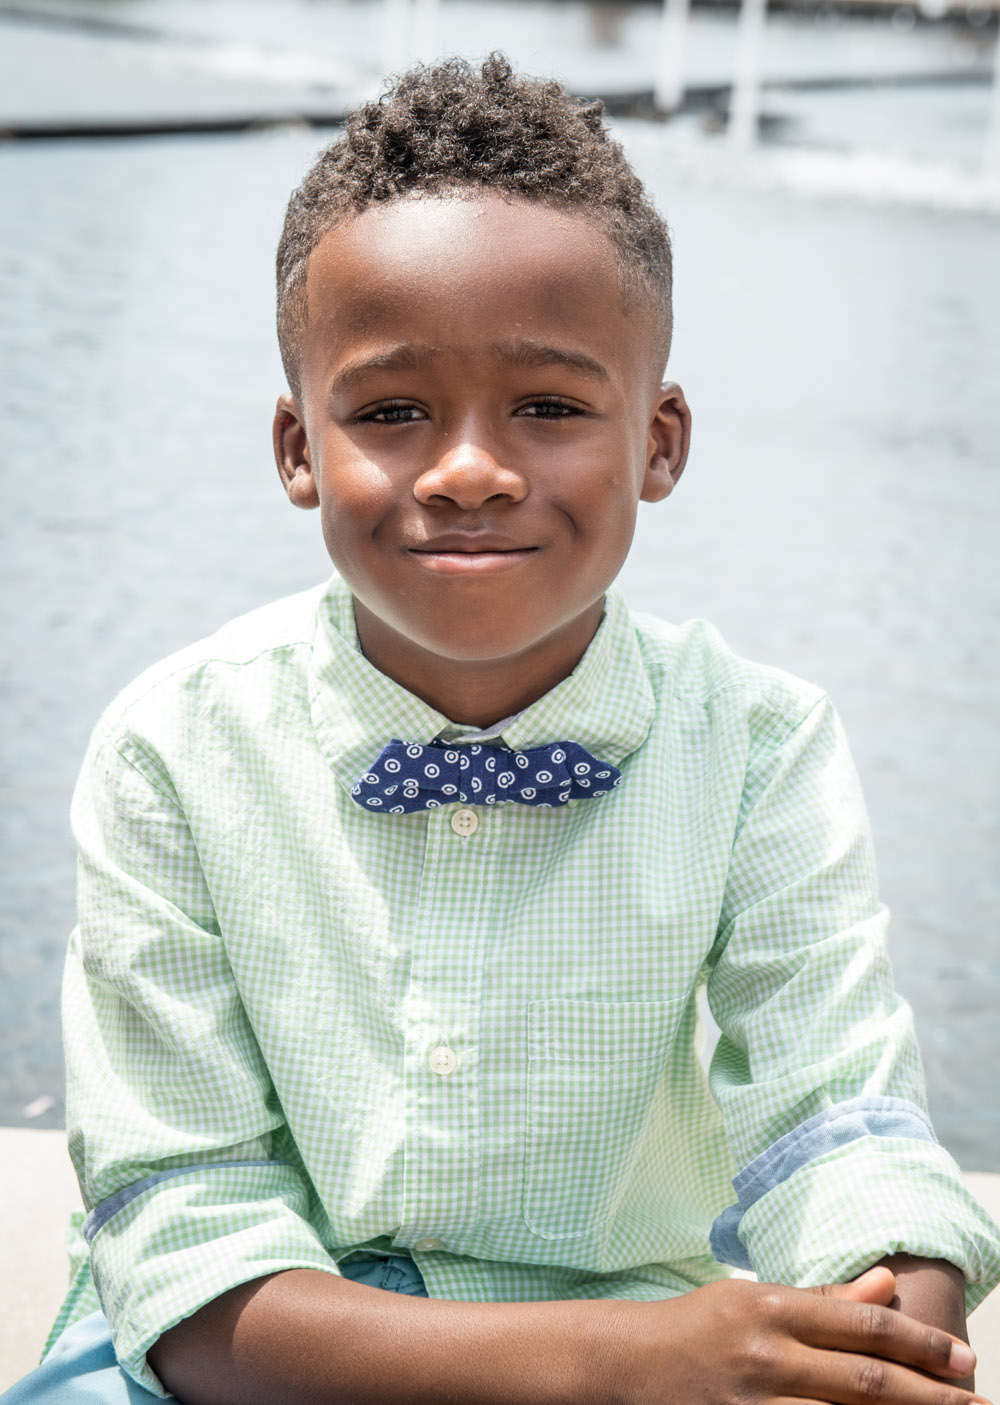 Because nothing says cute like a kid in a bow tie